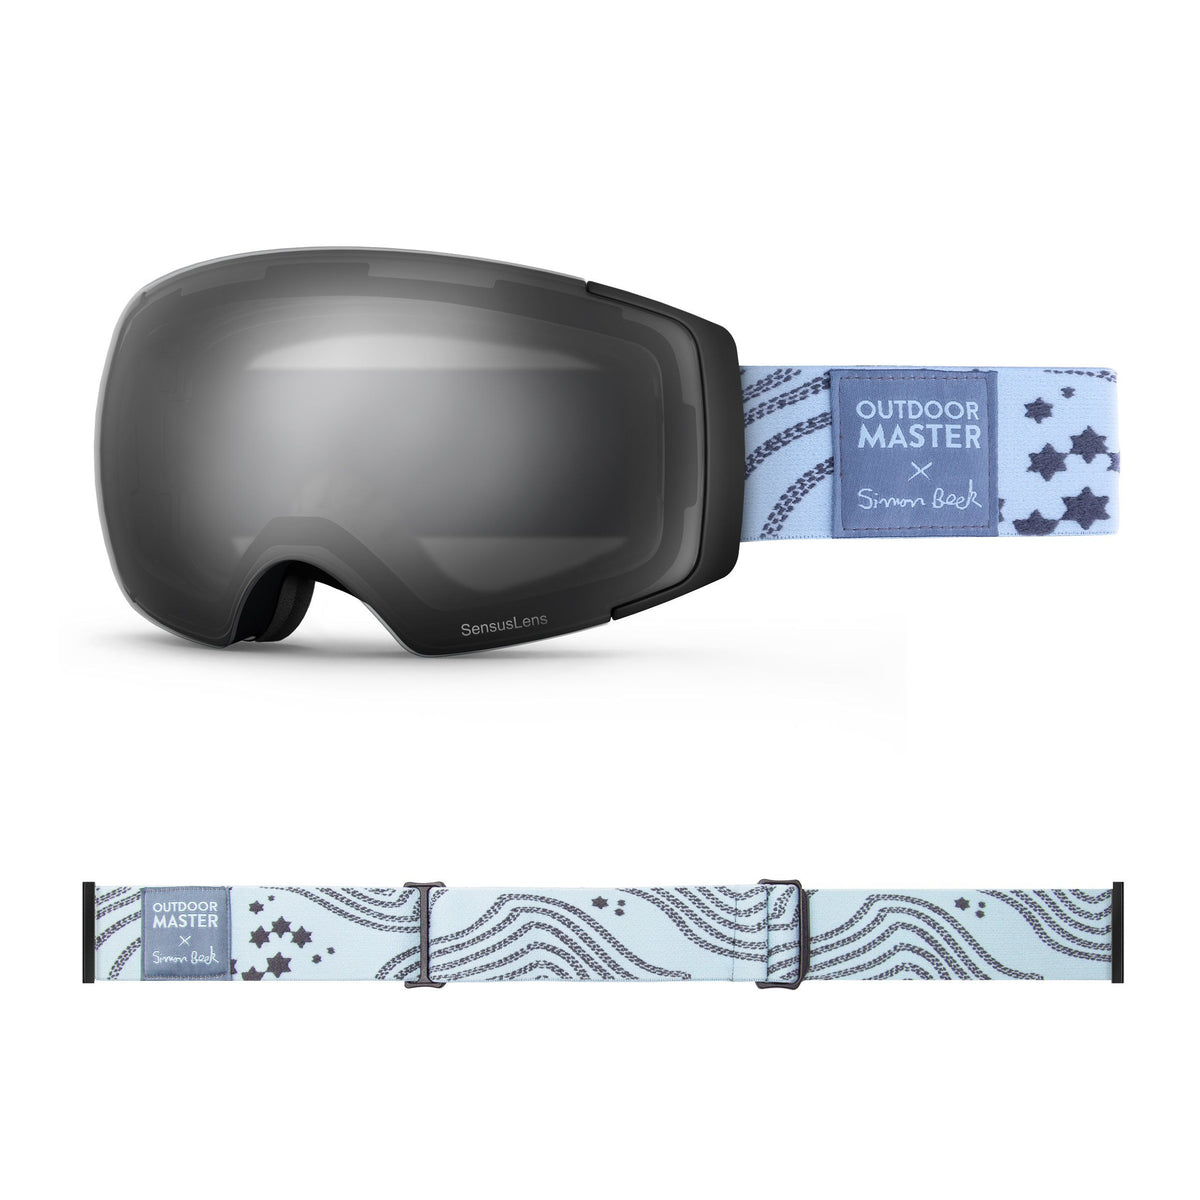 OutdoorMaster x Simon Beck Ski Goggles Pro Series - Snowshoeing Art Limited Edition OutdoorMaster SensusLens VLT 13-60% From Light to Dark Grey Star Road-Lightsteelblue